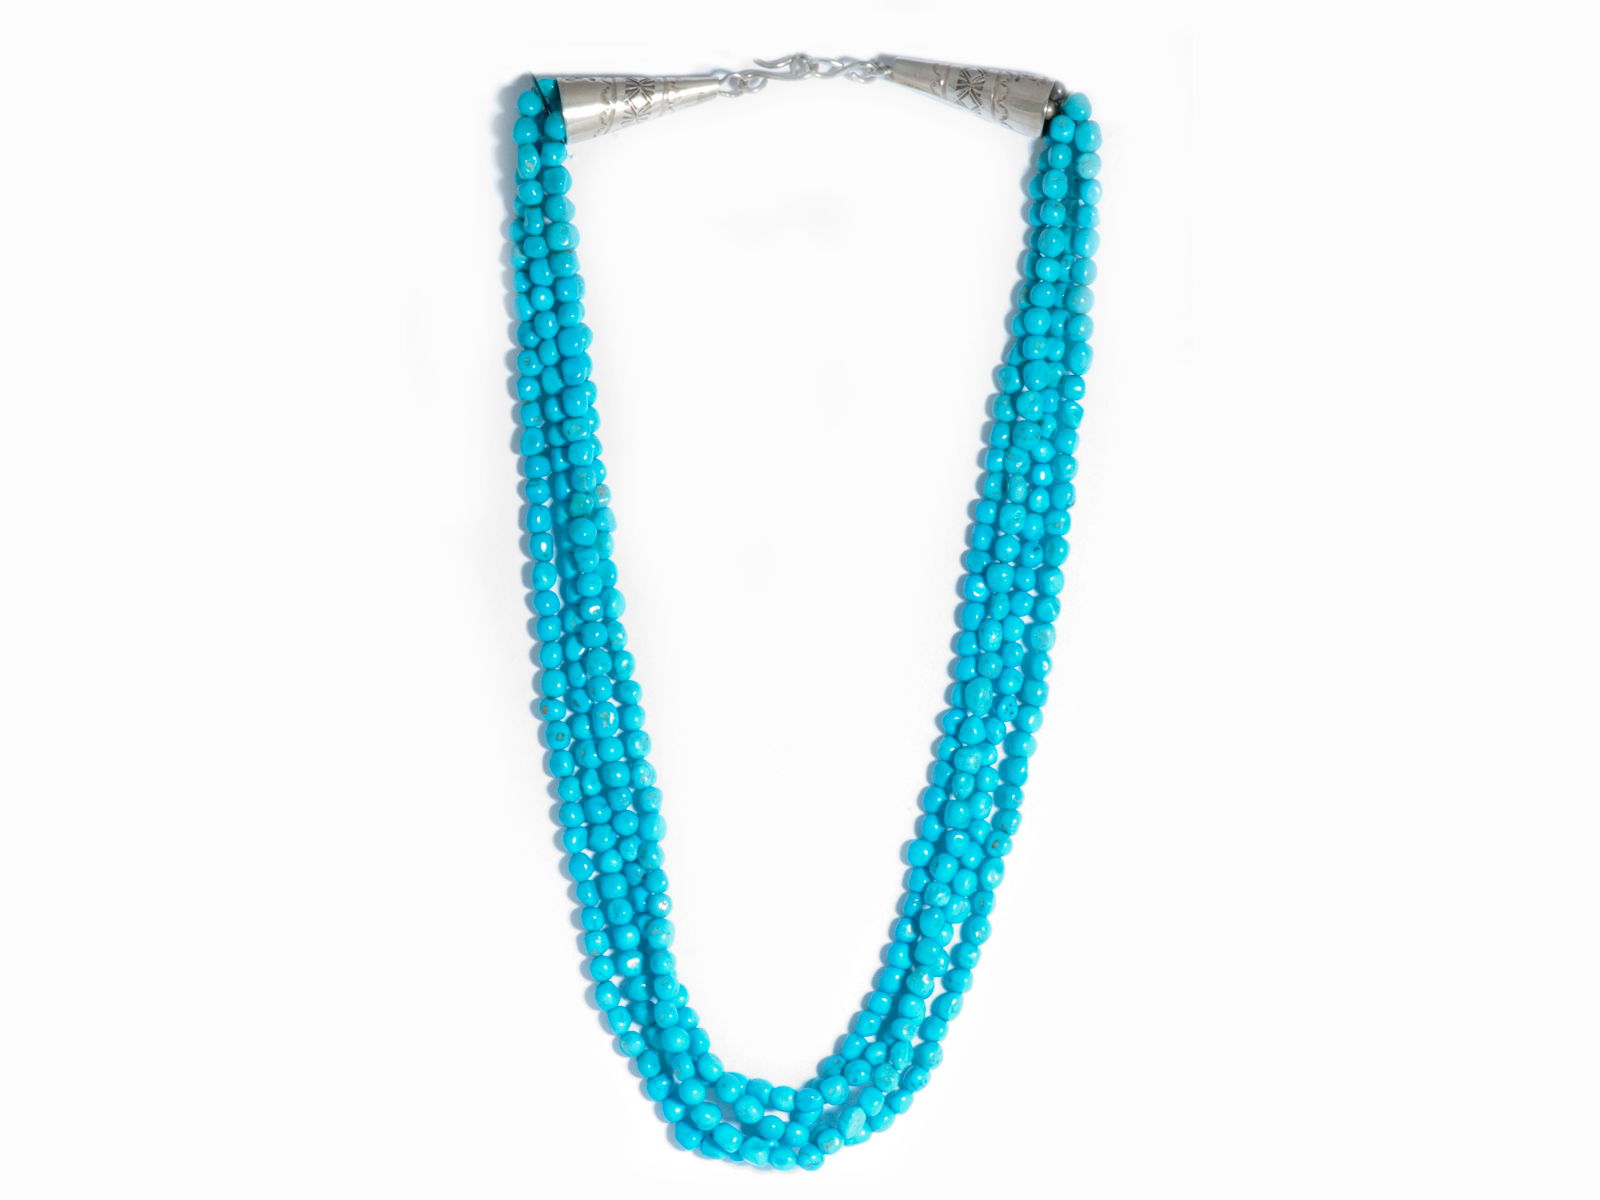 5 Strand Natural Sleeping Beauty Turquoise Bead Necklace